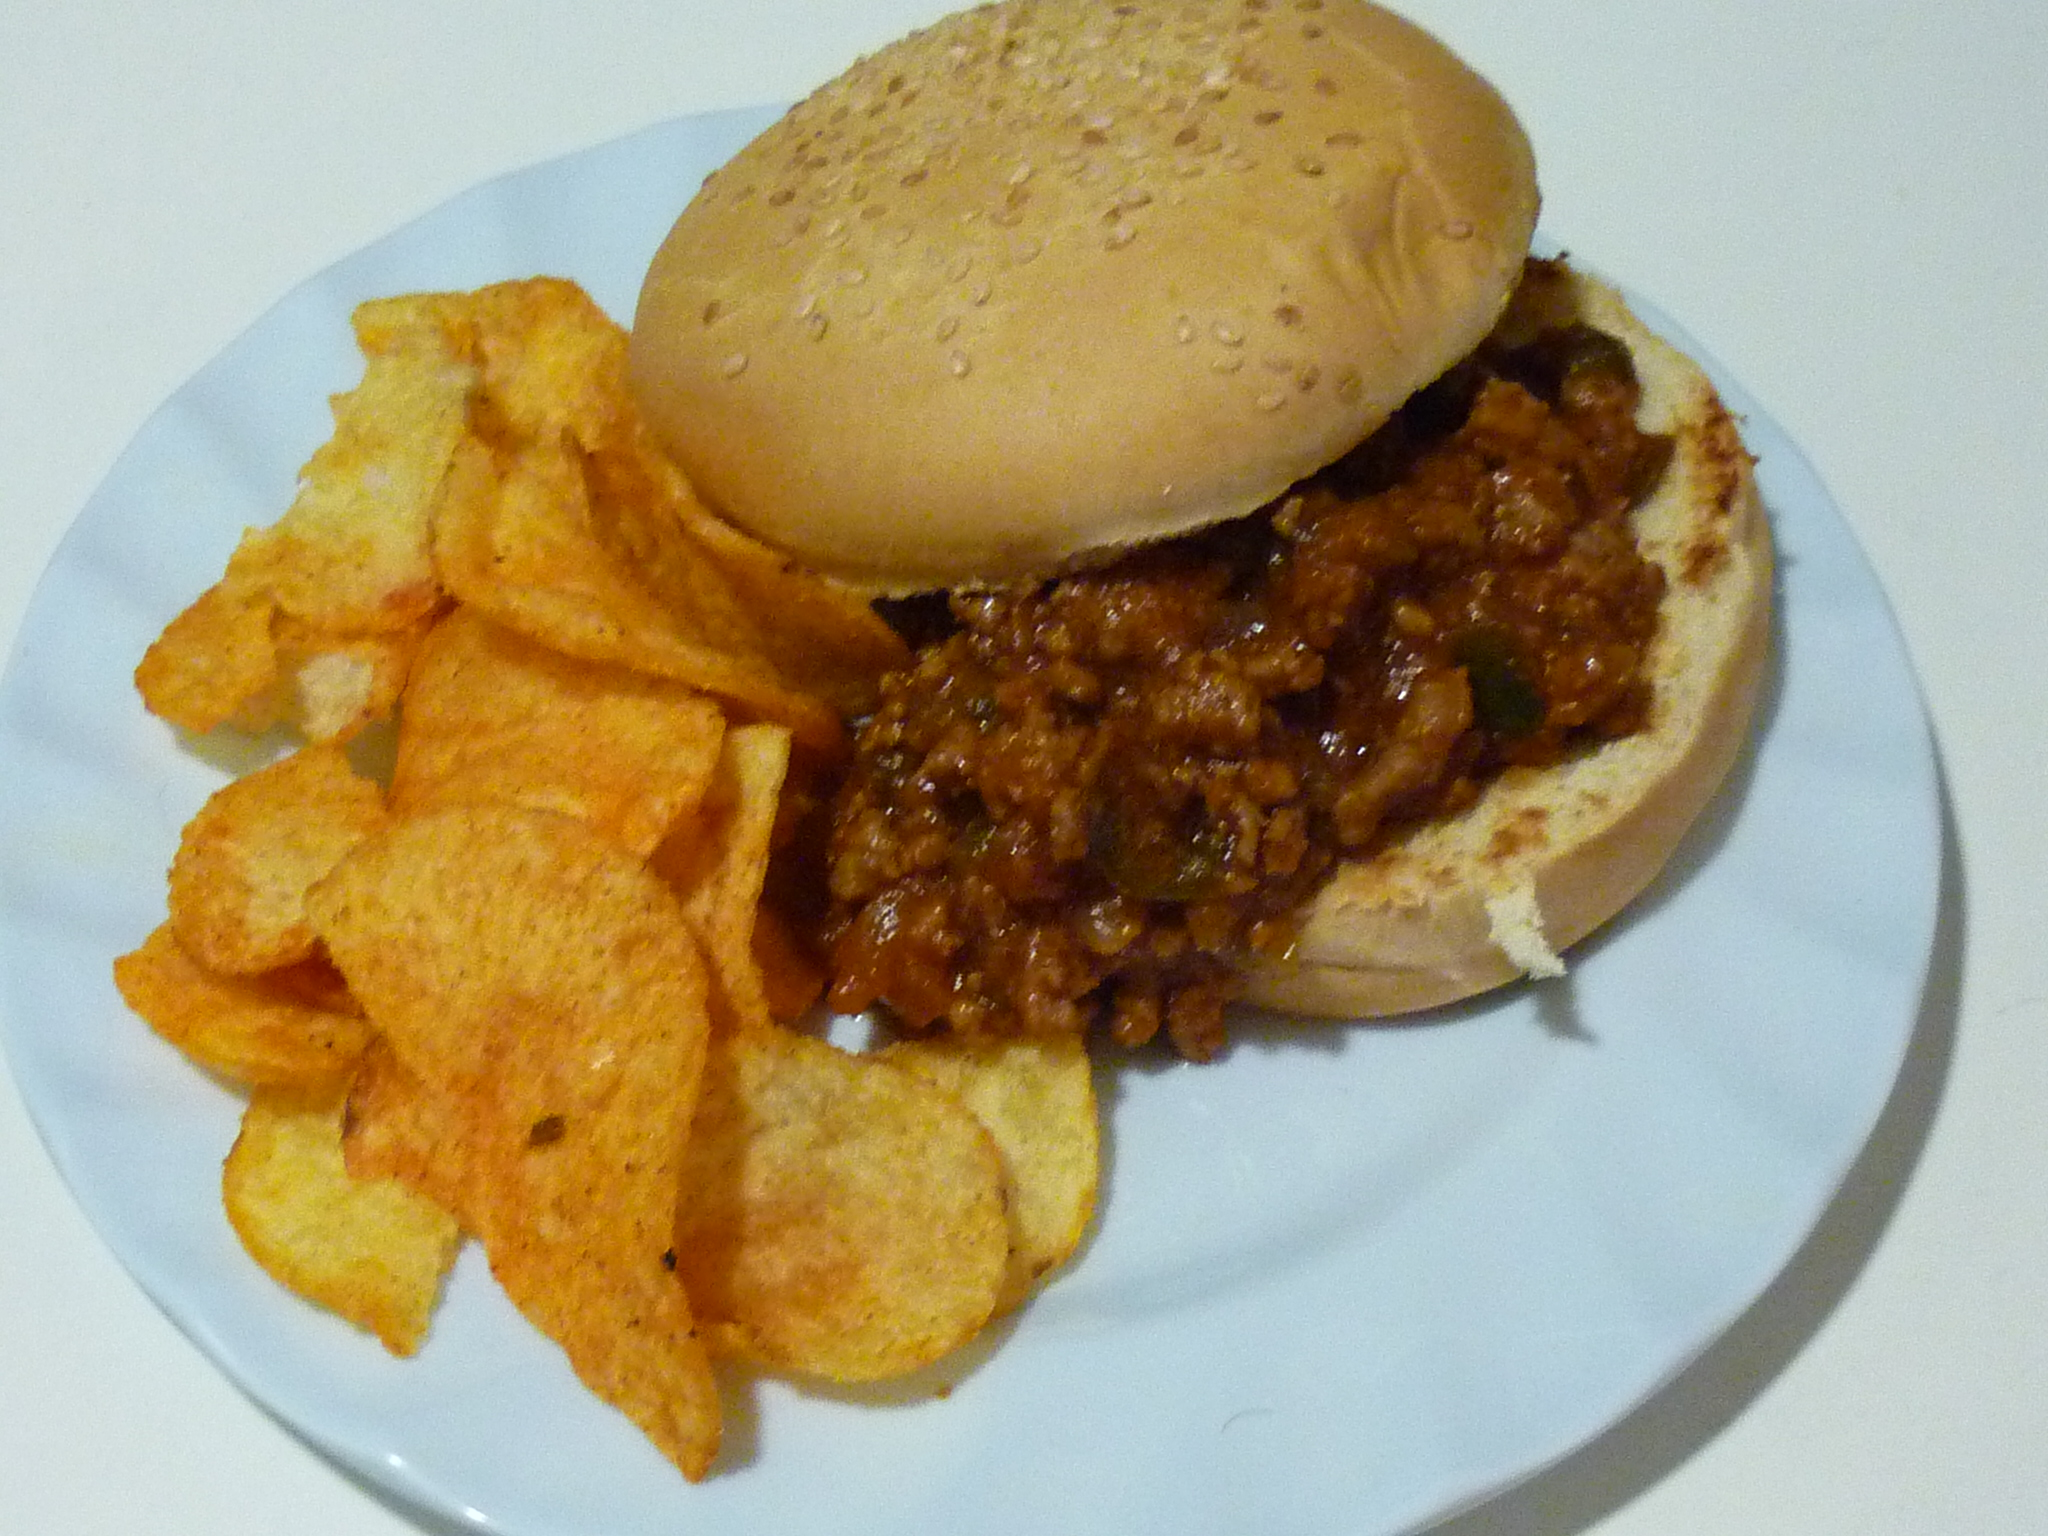 Have some more sloppy joes i made 'em extra sloppy for yous